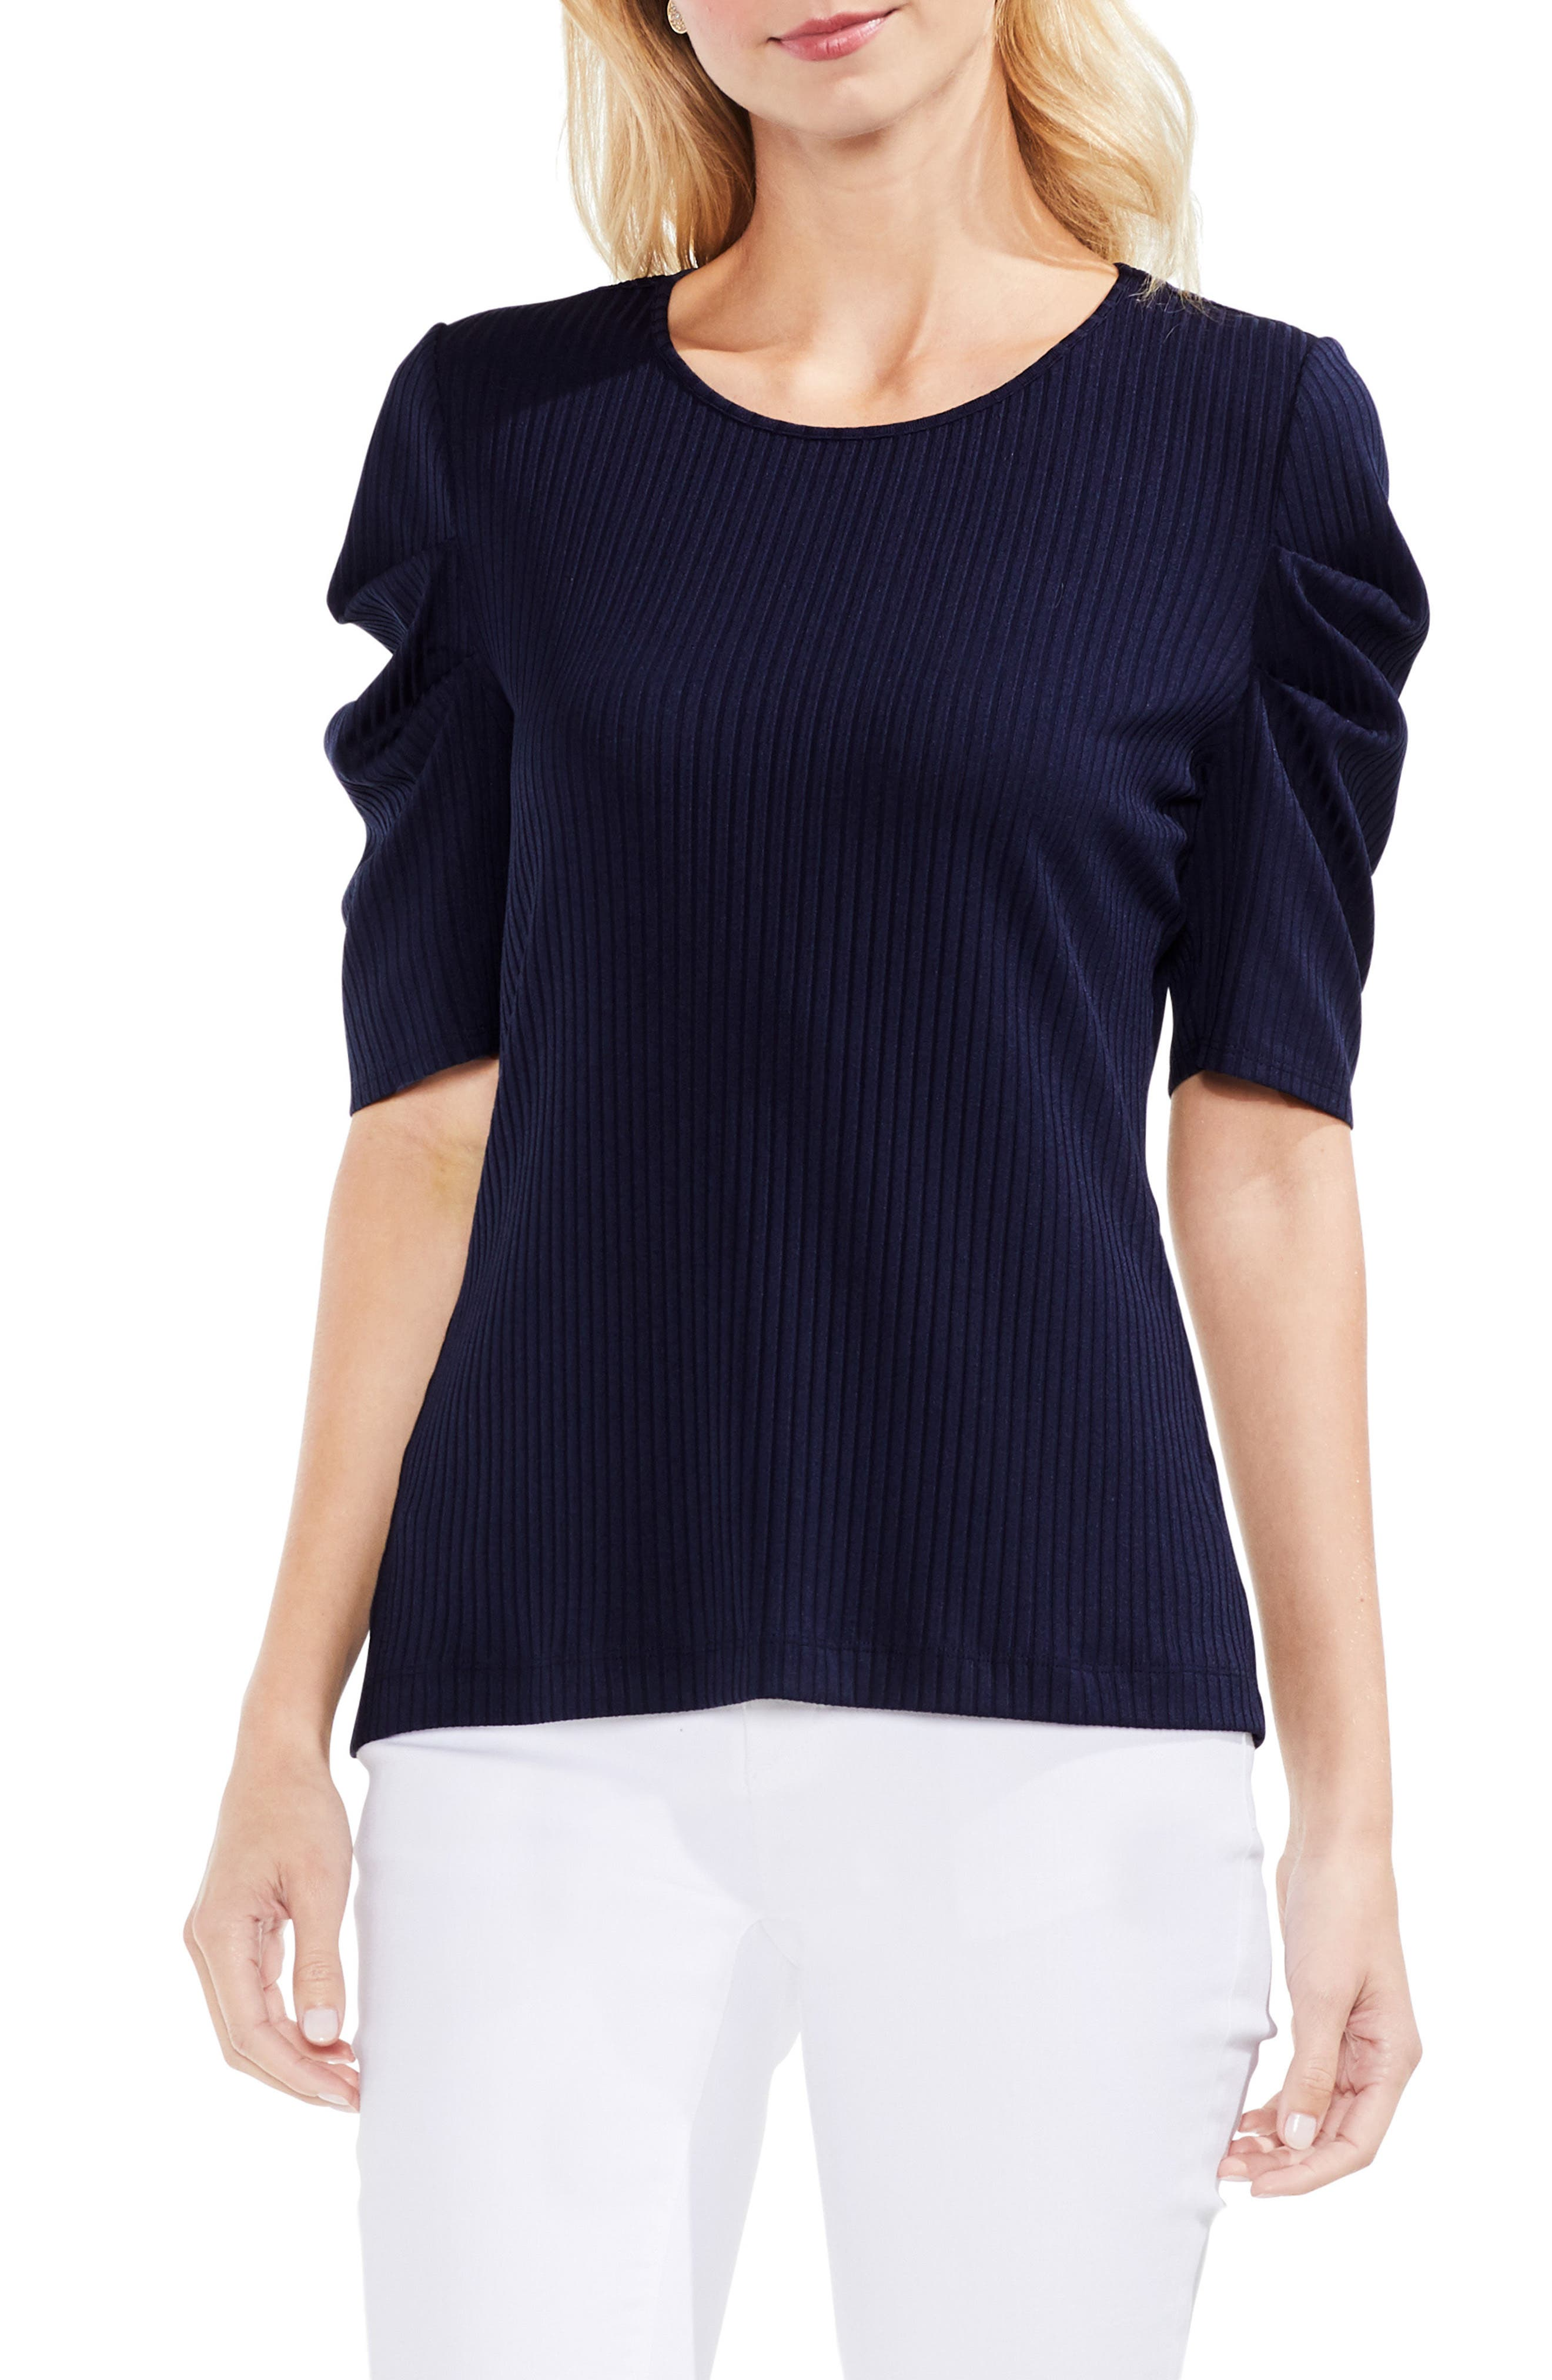 Alternate Image 1 Selected - Vince Camuto Draped Sleeve Ribbed Tee